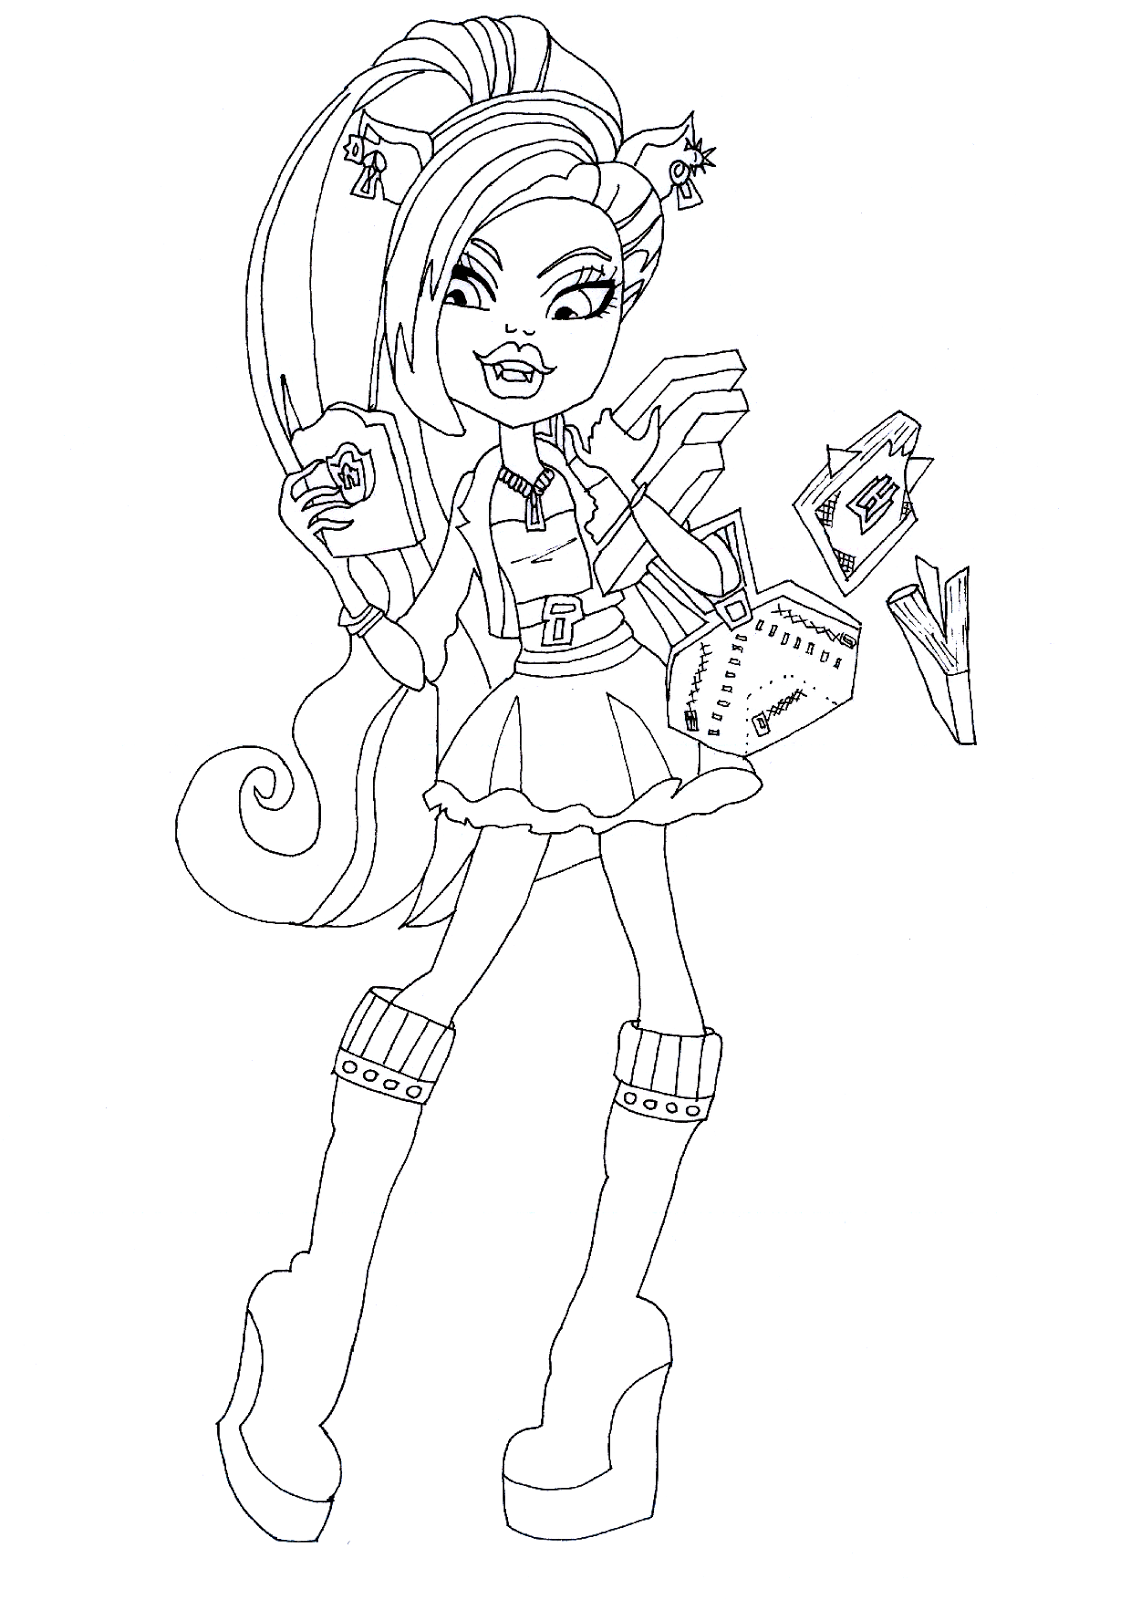 Free printable monster high coloring pages october 2013 for Monster high printables coloring pages